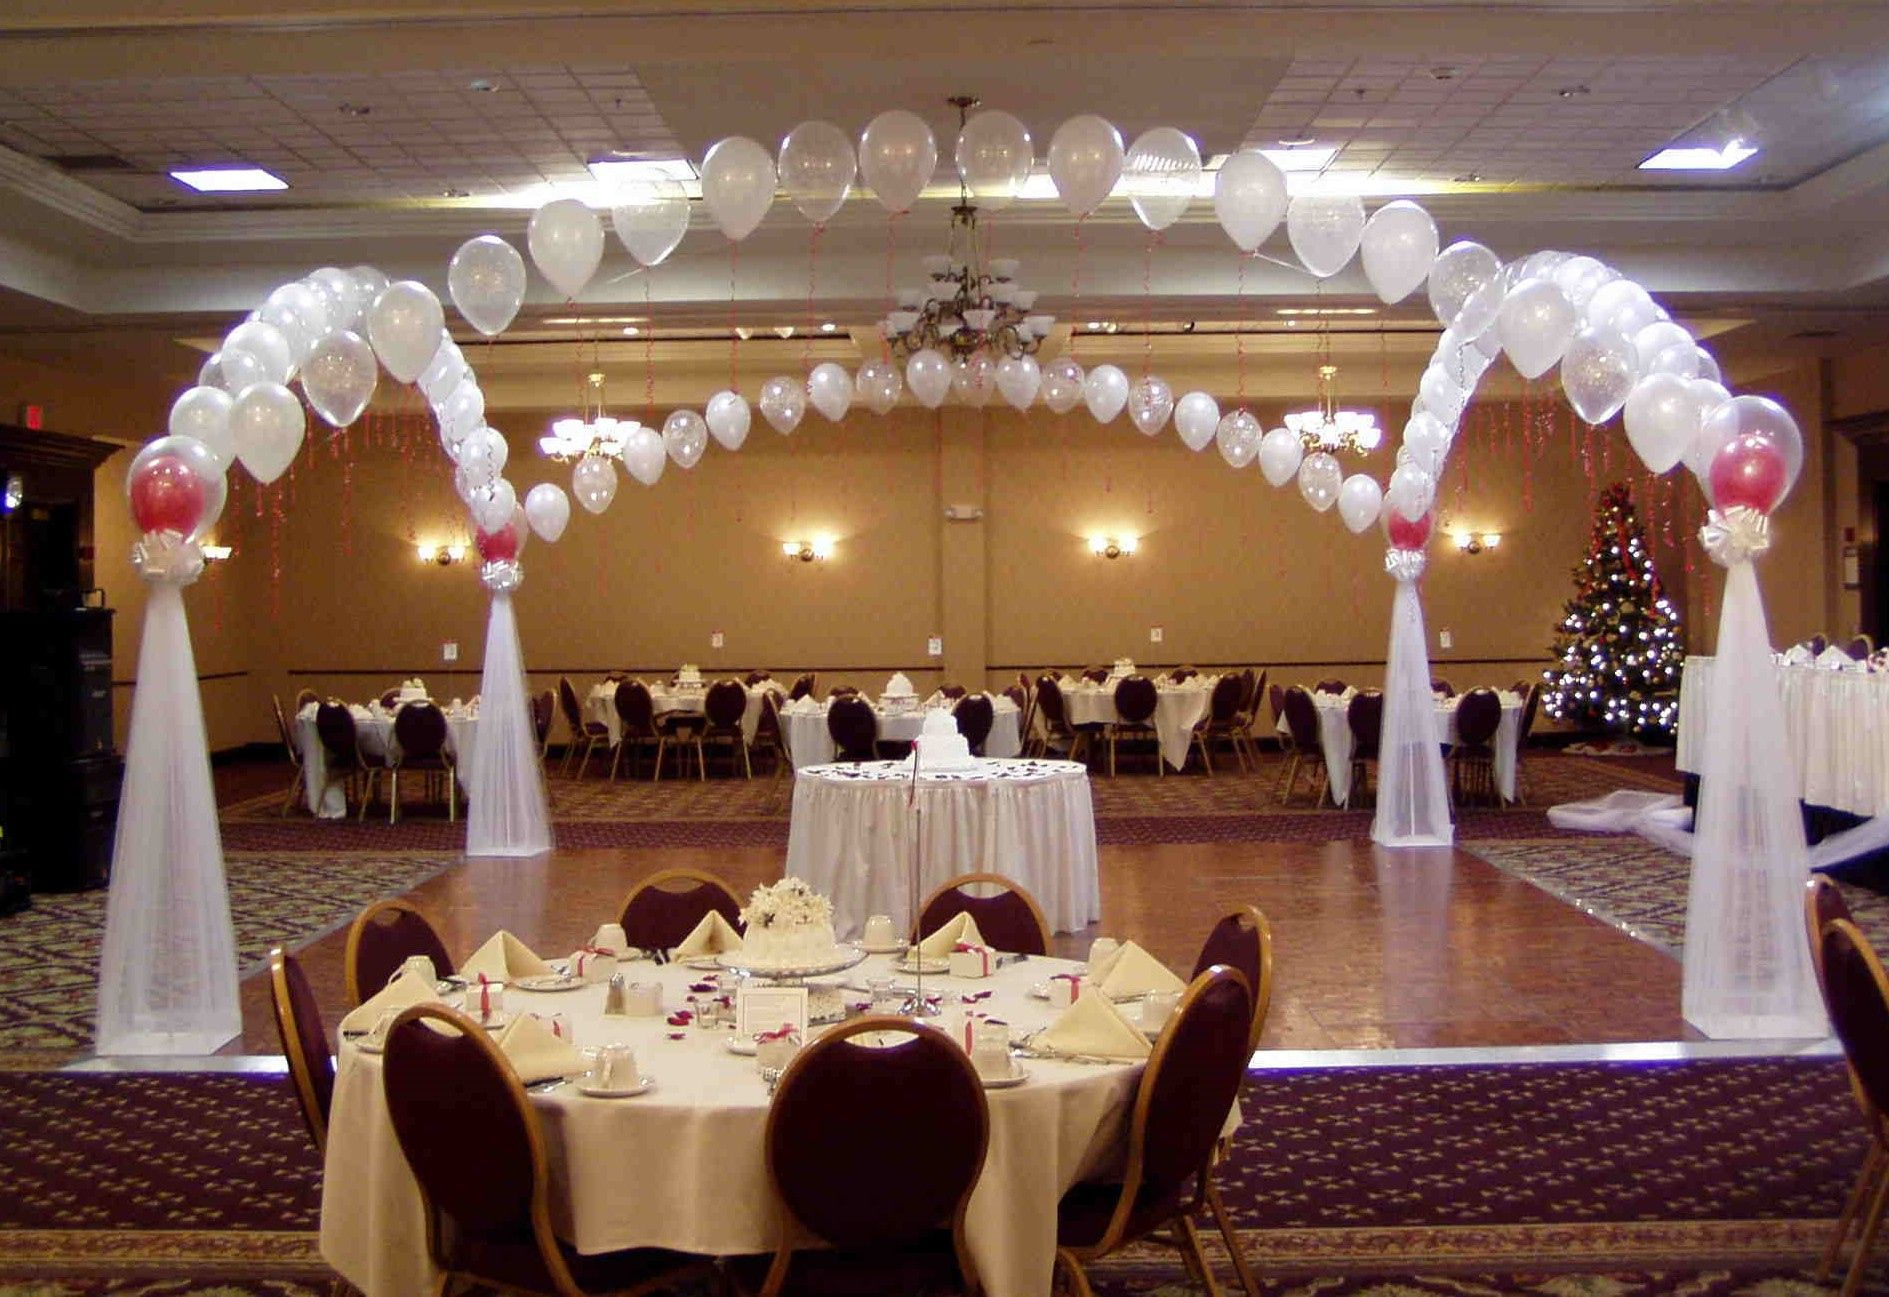 Low Budget Wedding Decorations Interior House Paint Ideas Check